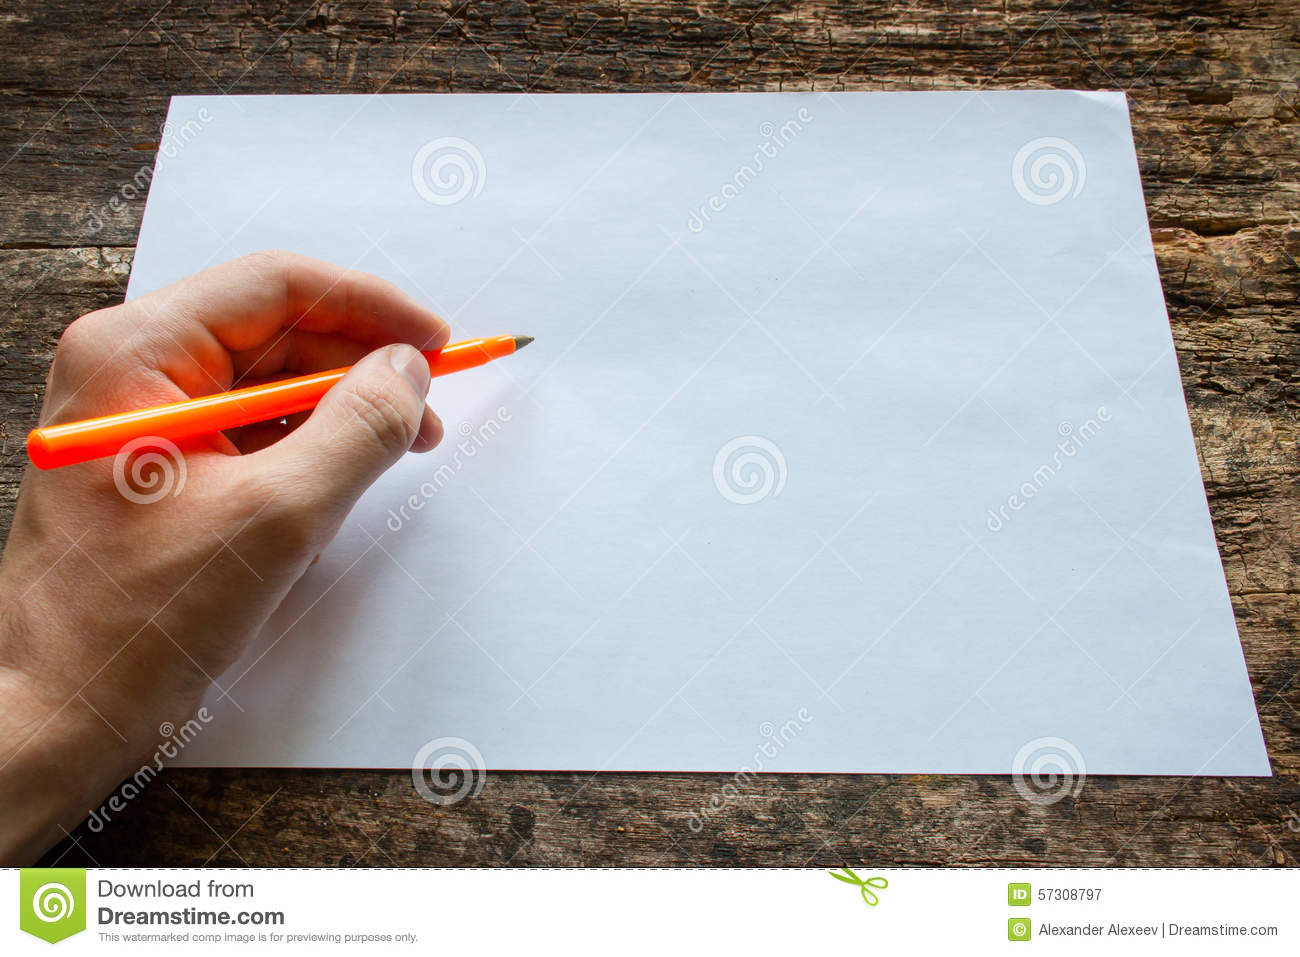 Lefty writes with a ballpoint pen on a sheet of paper on wooden table